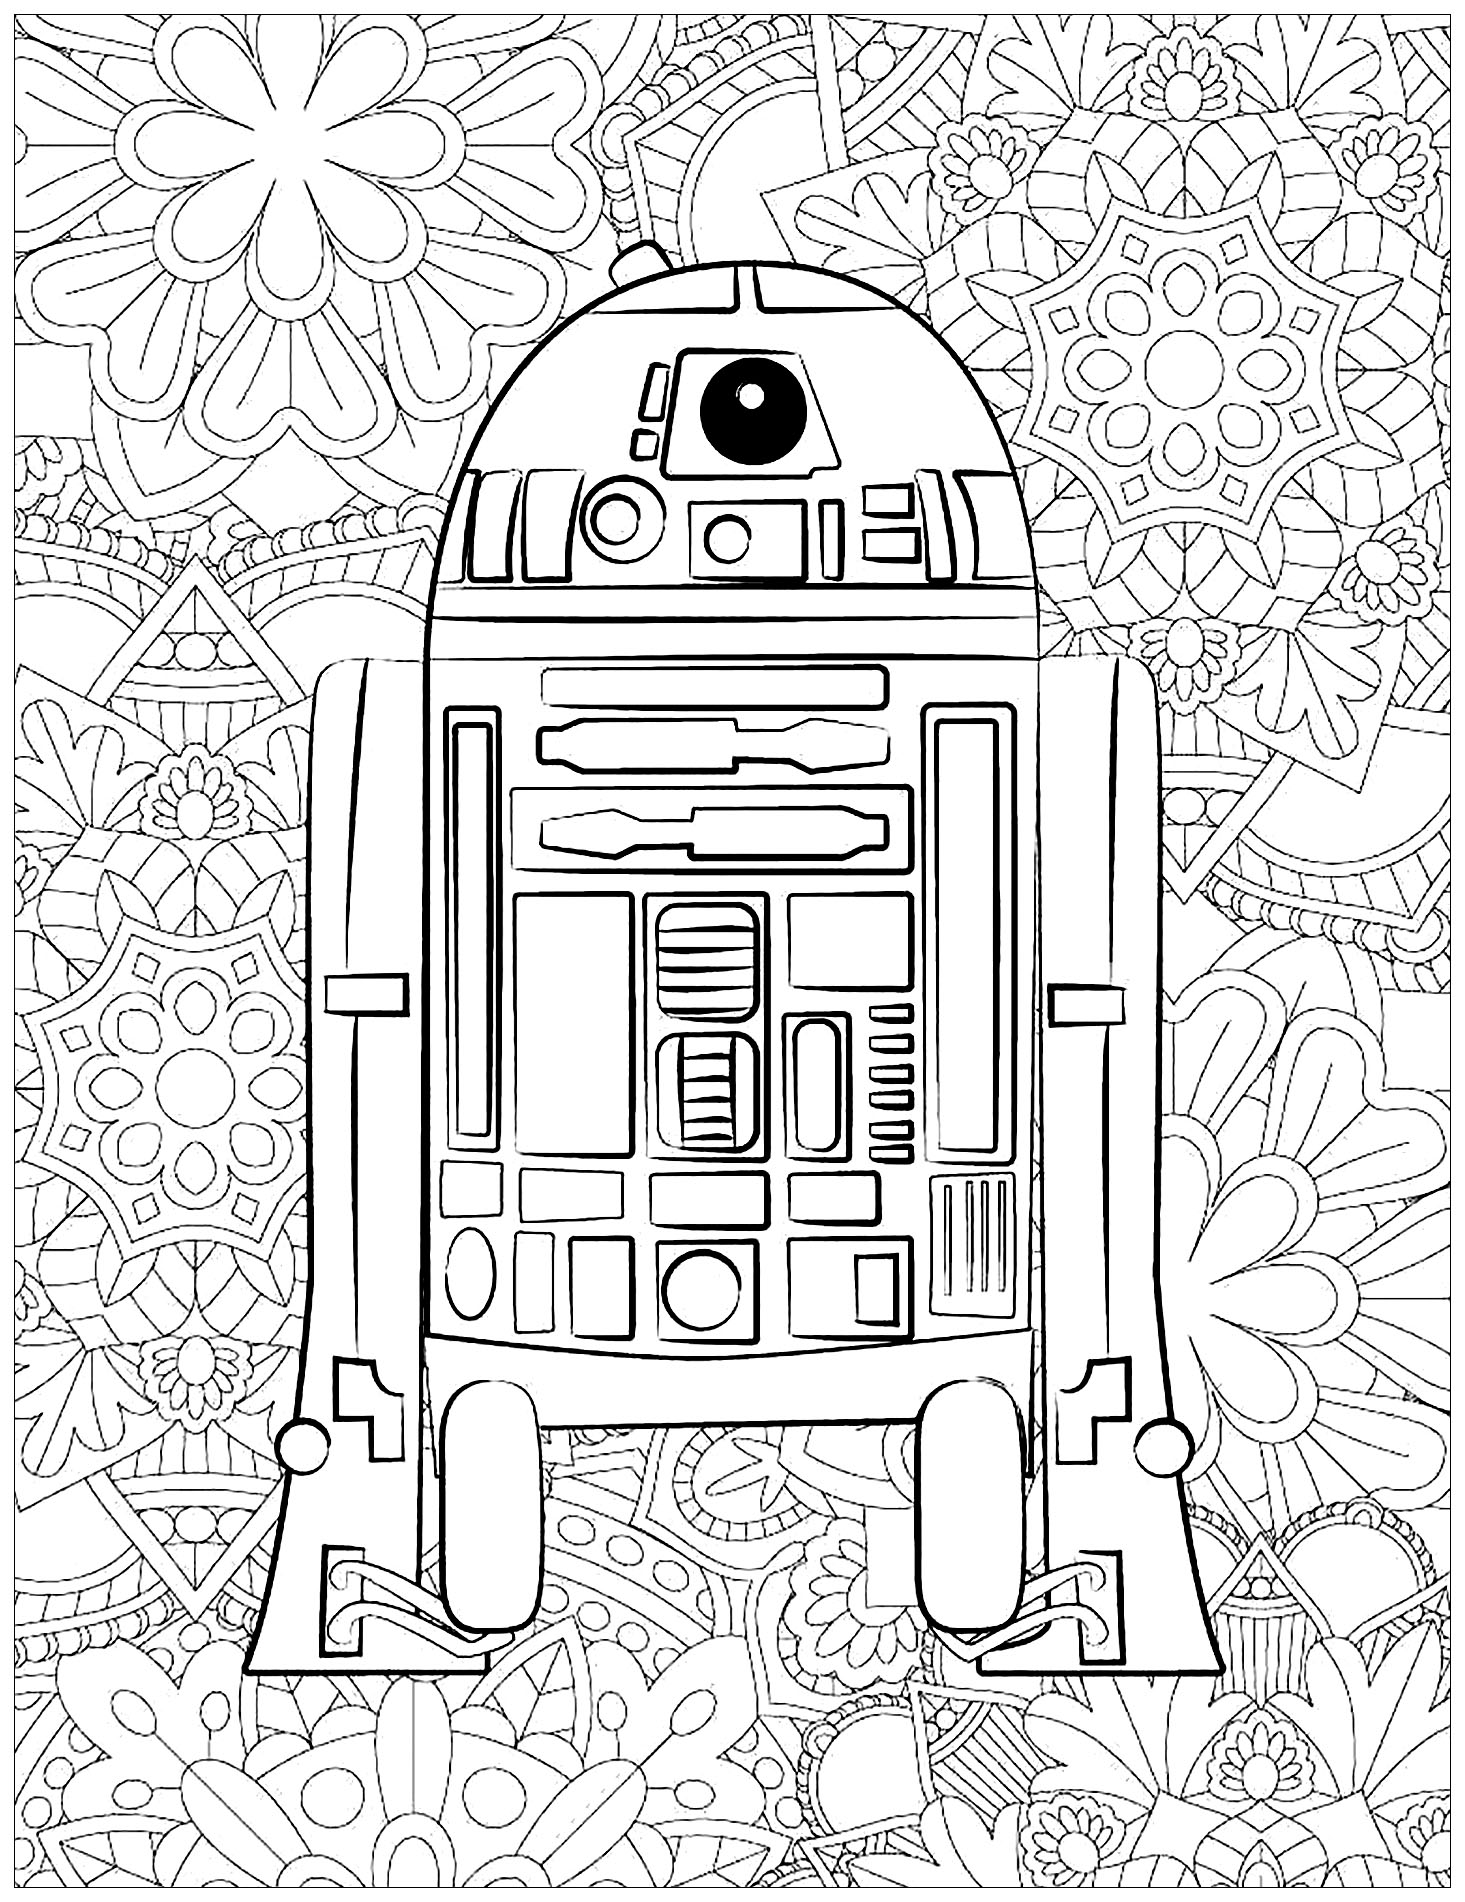 rogue one coloring pages Lovely Rogue e Coloring Pages Related Keywords Rogue e